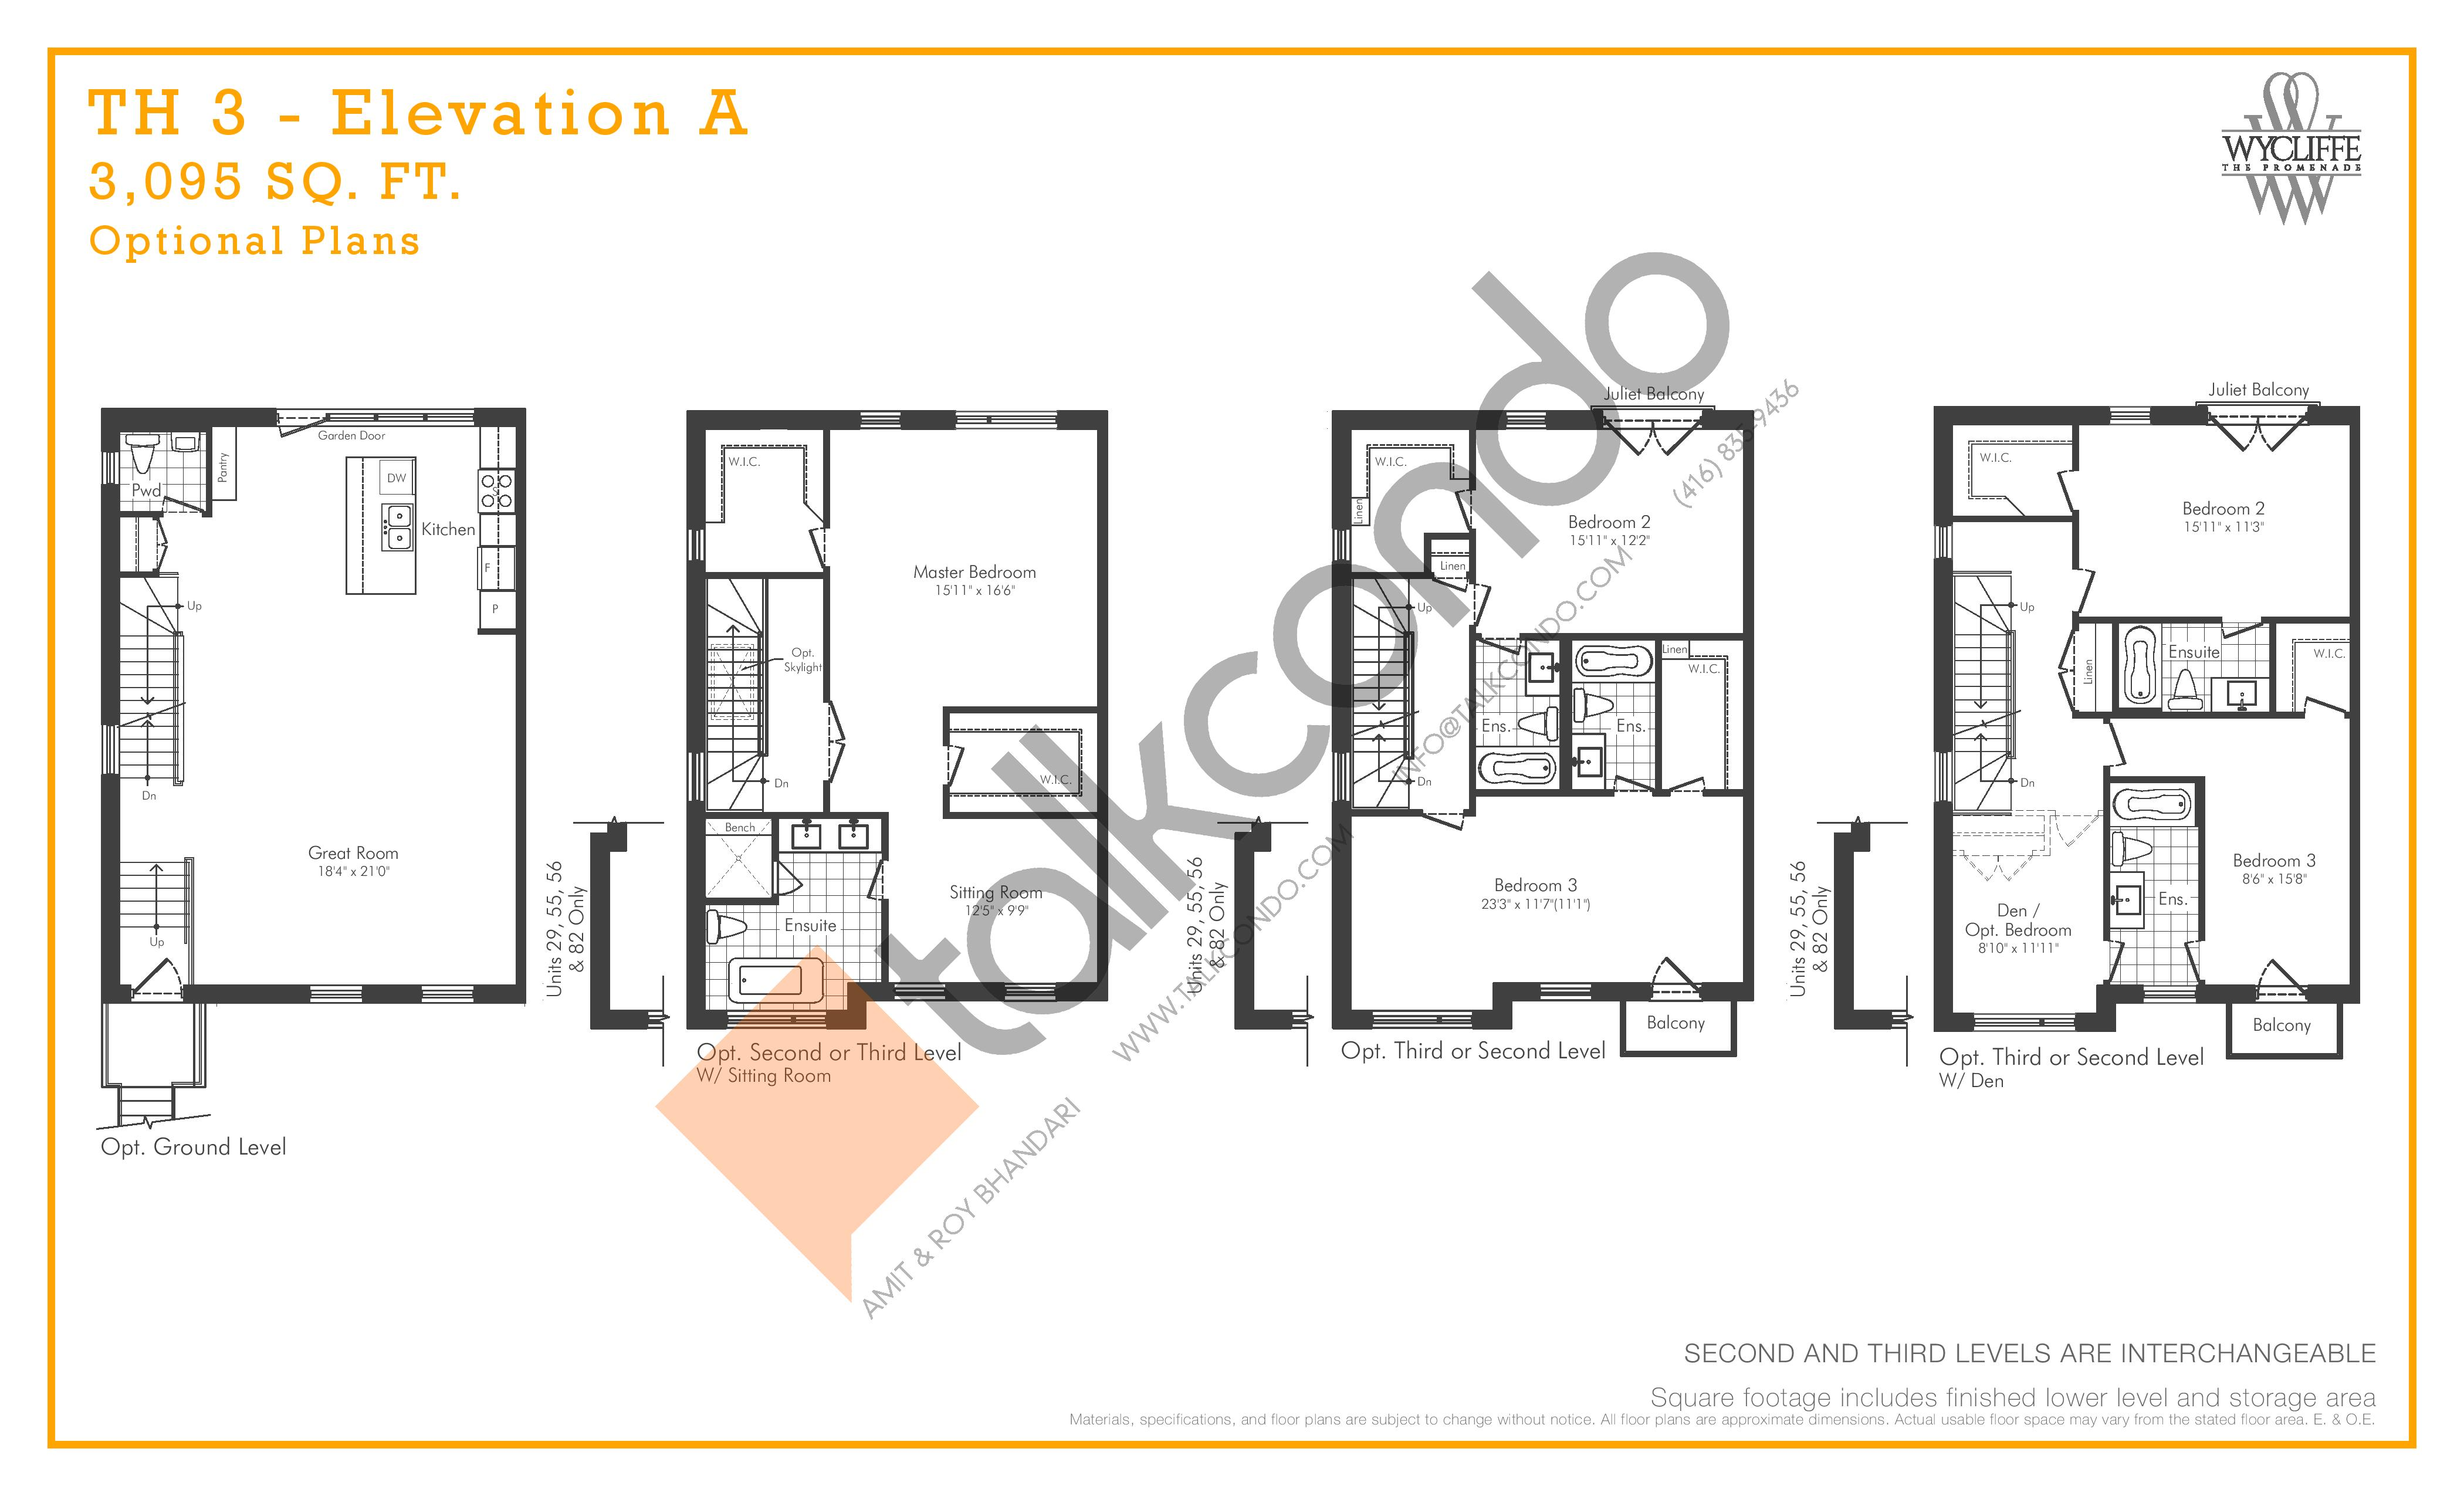 TH 3 - Elevation A Optional Plans Floor Plan at Wycliffe at the Promenade - 3095 sq.ft